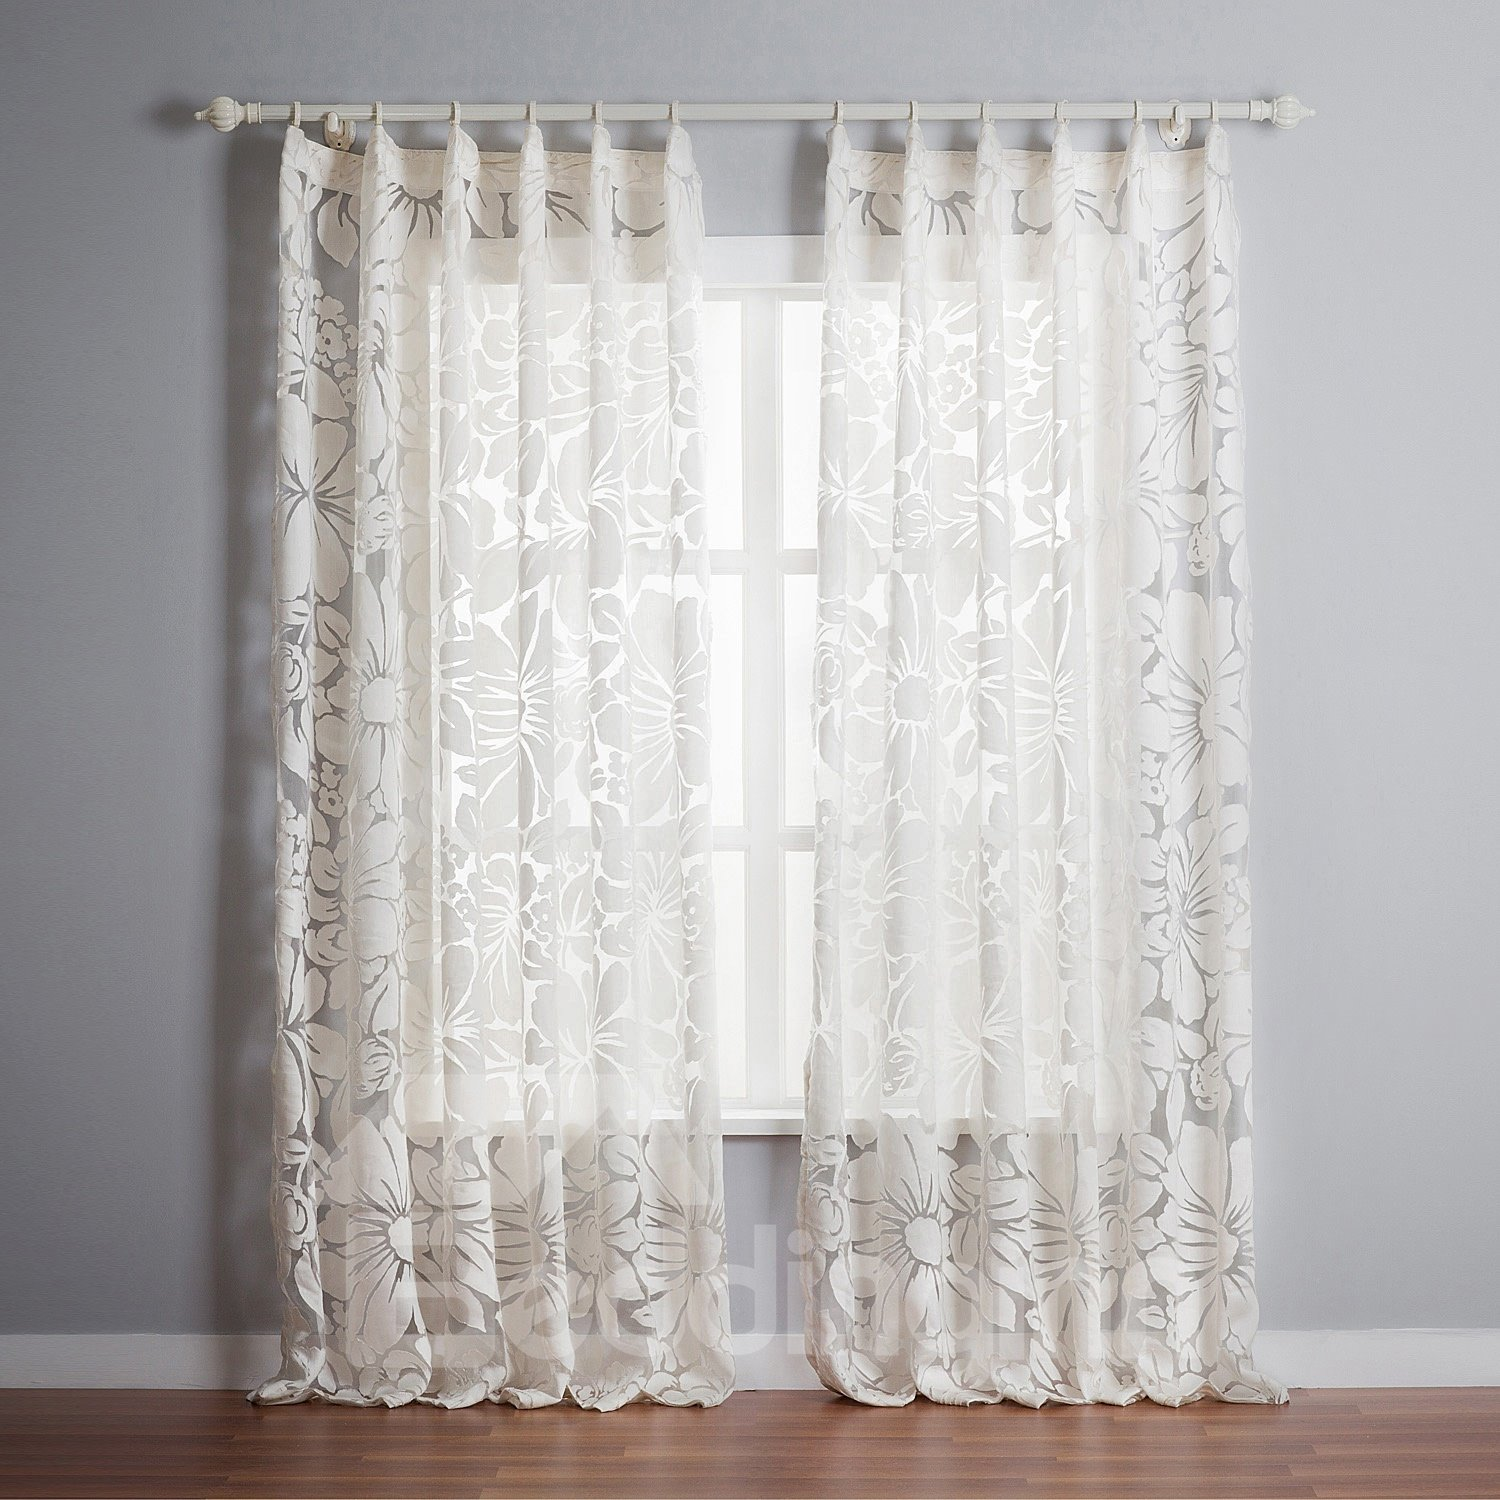 Top Quality Graceful White Polyester Custom Sheer Curtain